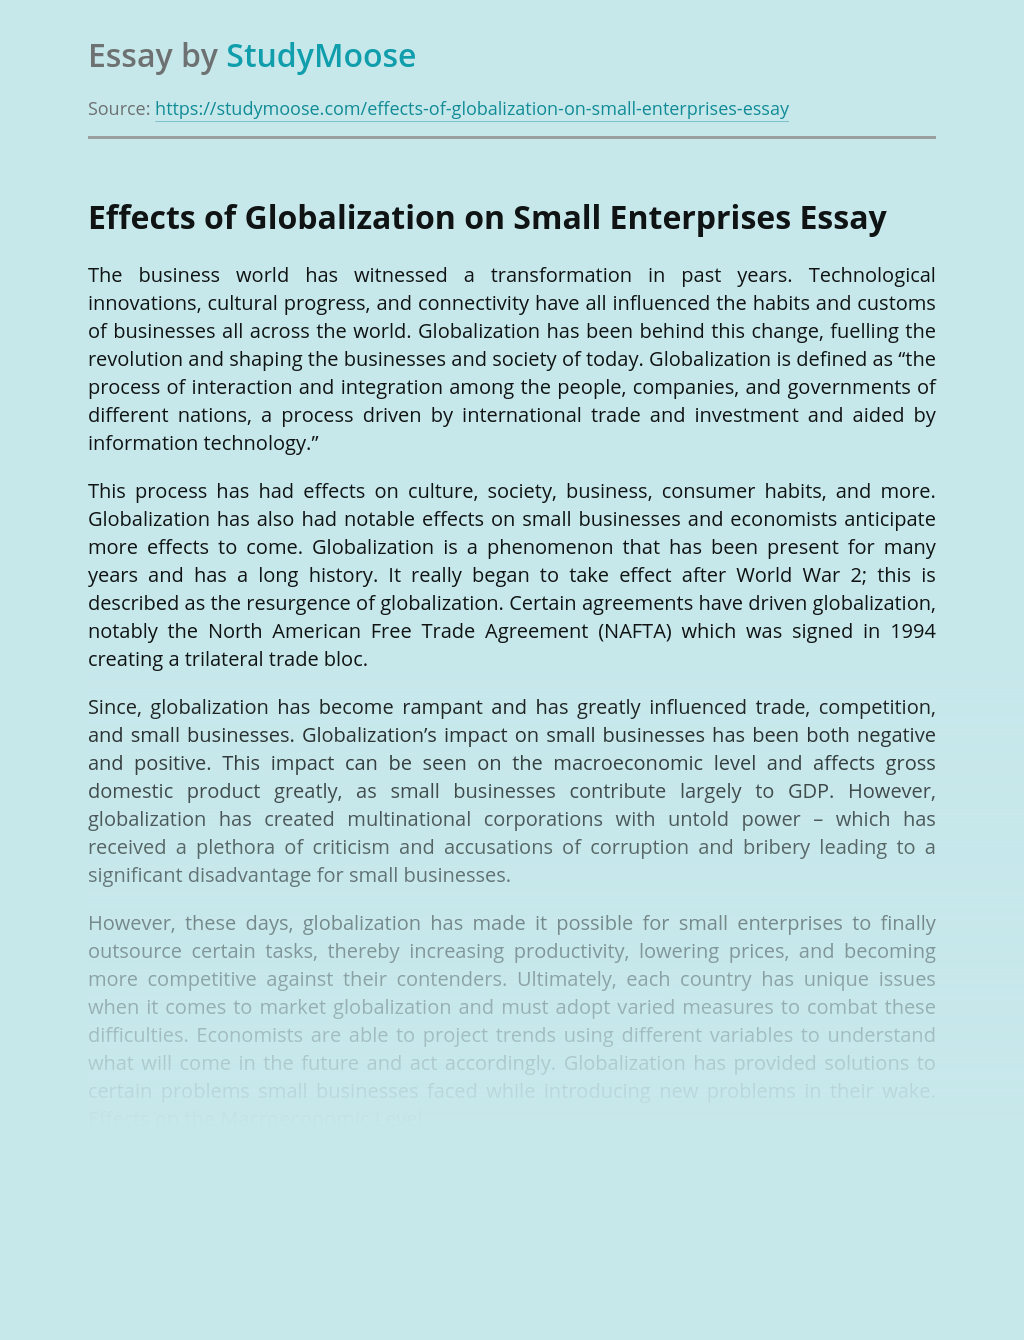 Effects of Globalization on Small Enterprises